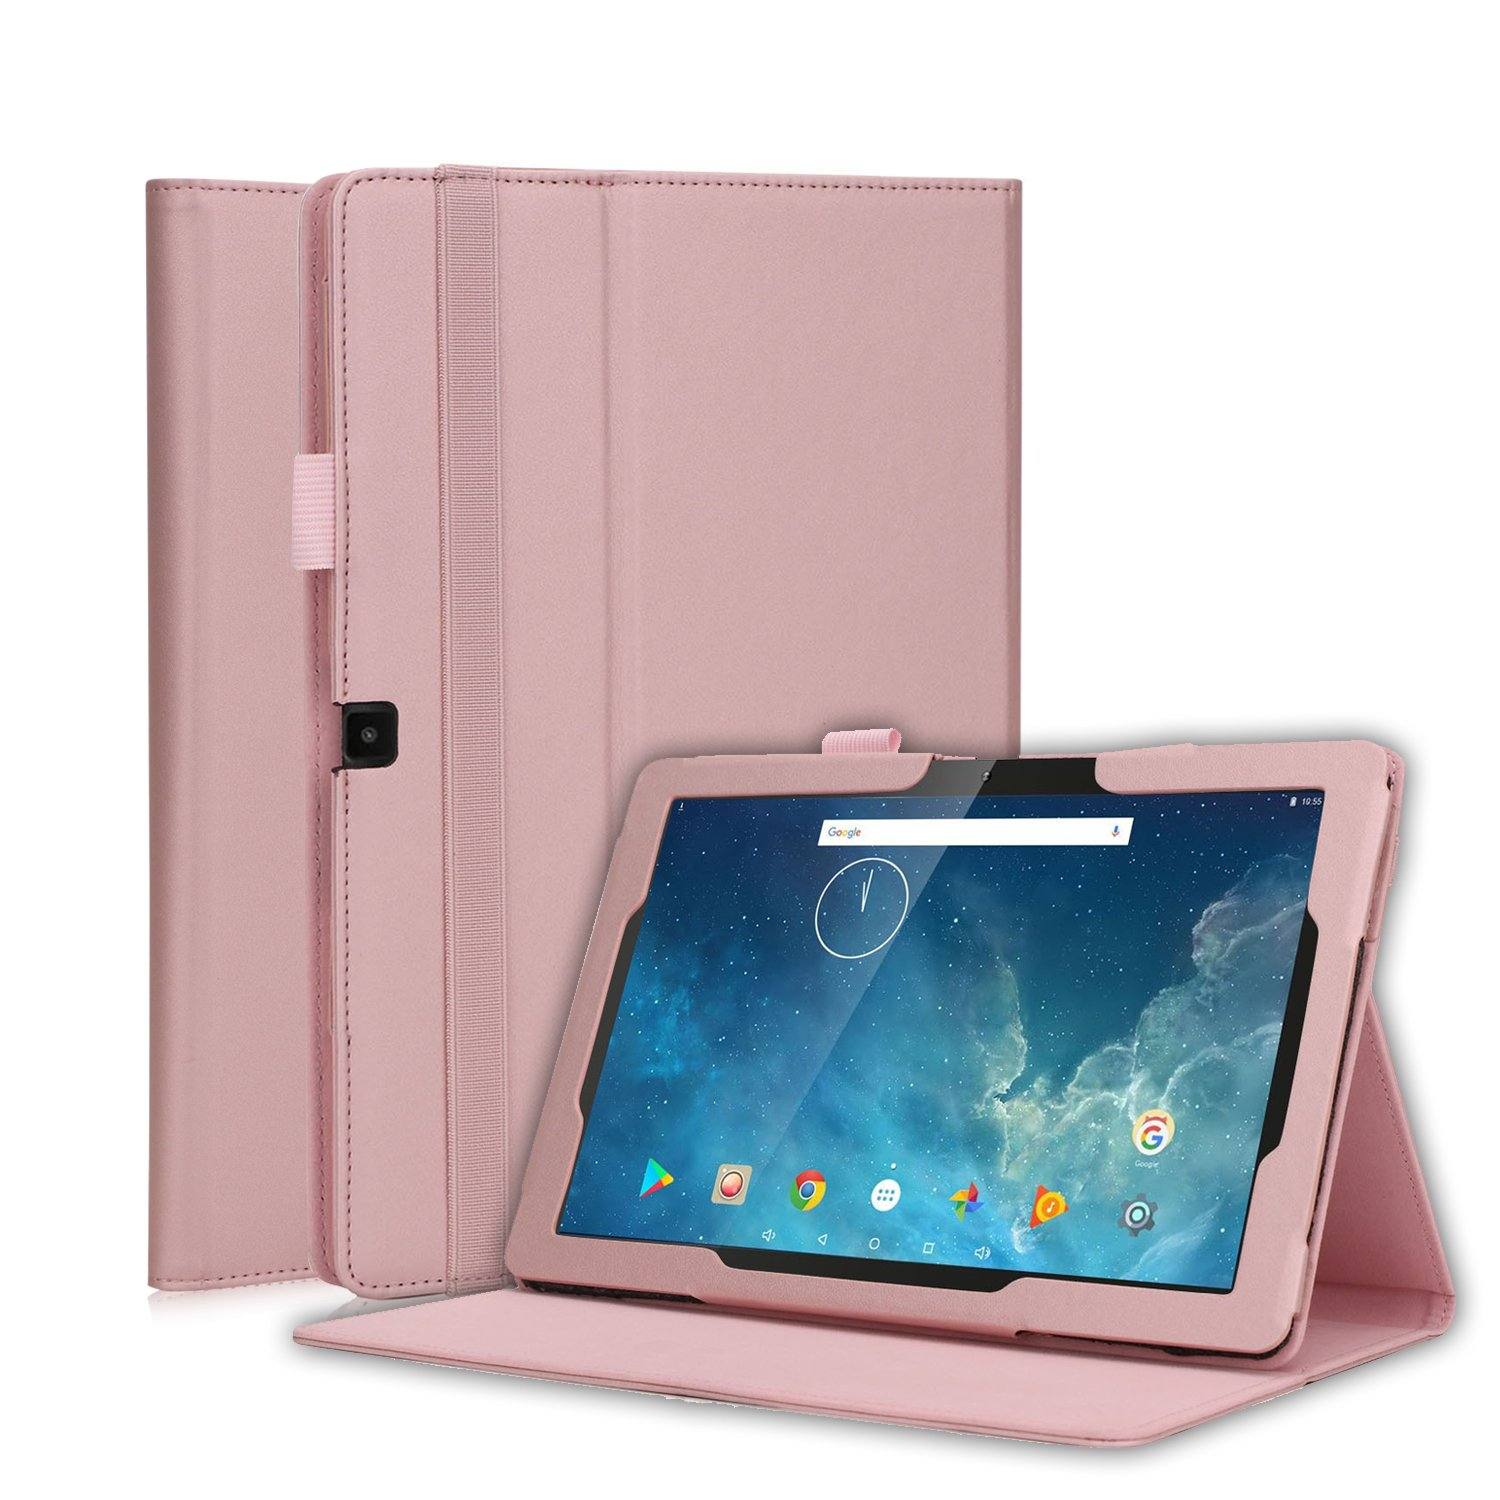 Dragon Touch 10.1 inch X10 Tablet Case, Premium PU Leather Folio Stand Cover with Velcro Hand Strap for Dragon Touch X10 2017 Edition, Fusion5 104+, IVIEW-1070TPC-II 10.1-Inch Tablet (Rose gold)